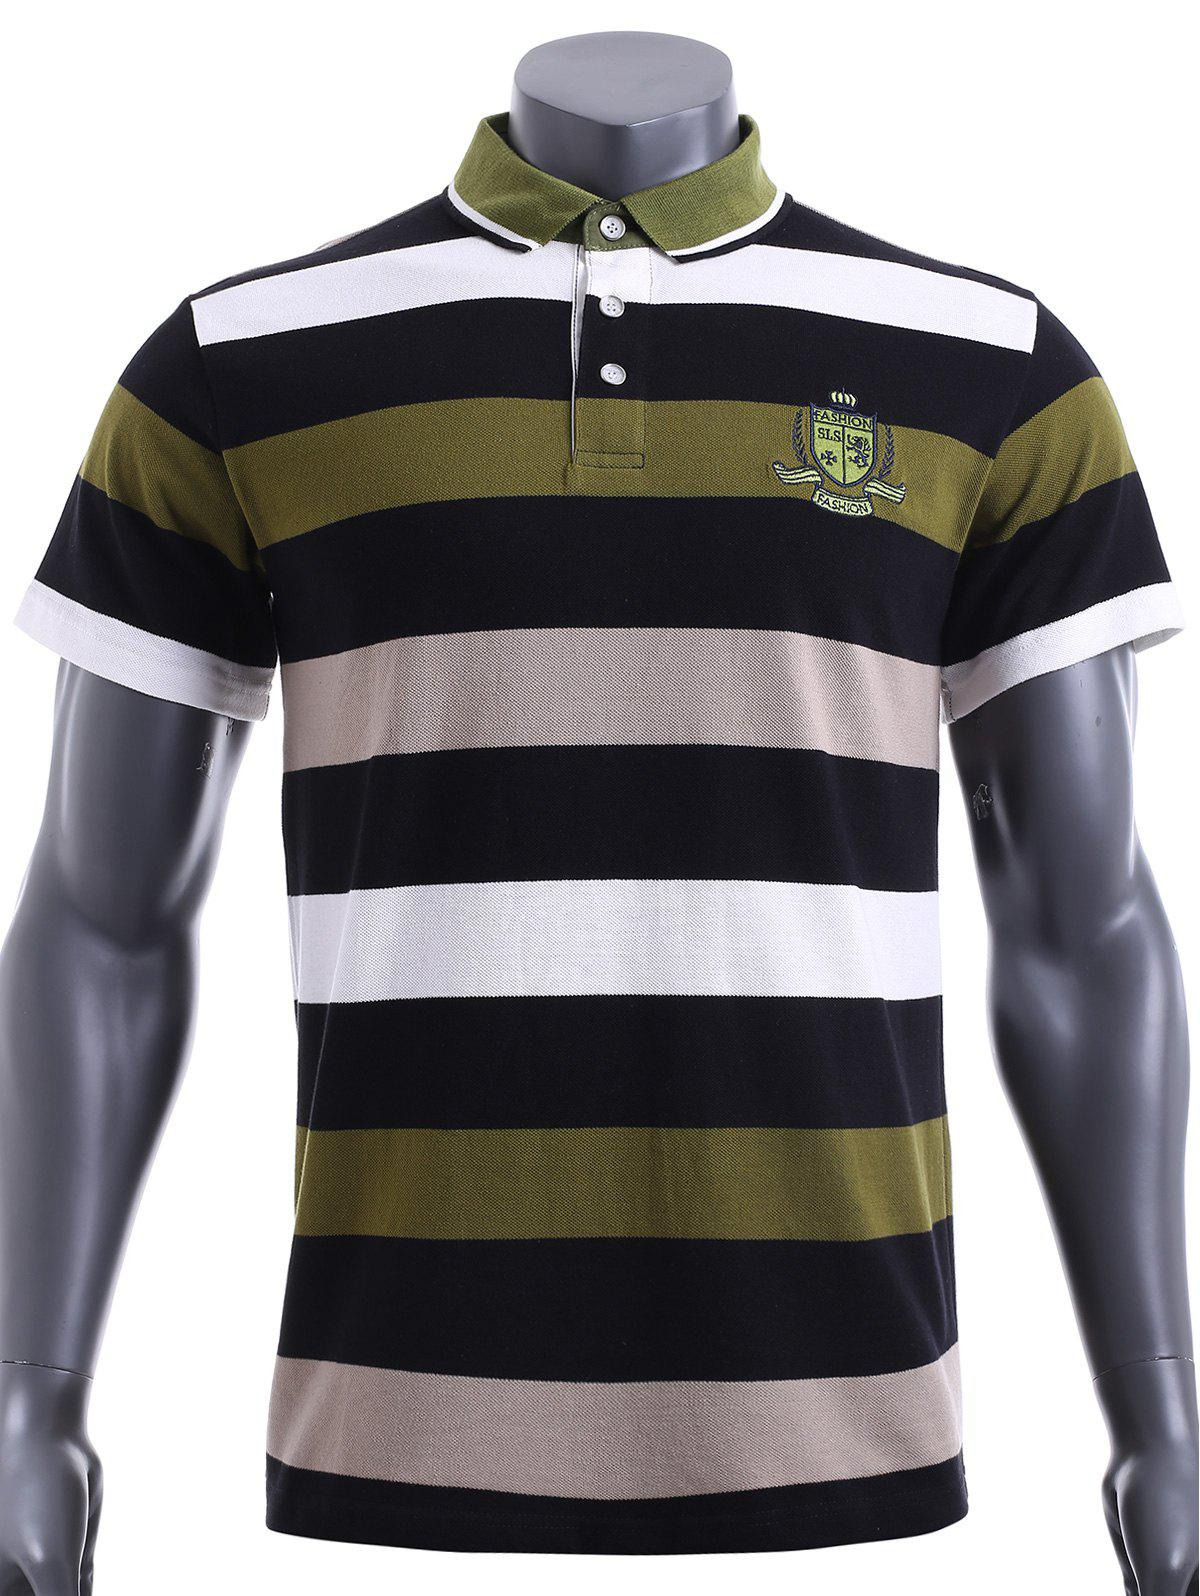 Slim Fit Stripe Short Sleeves Polo T-Shirt For Men - GREEN M